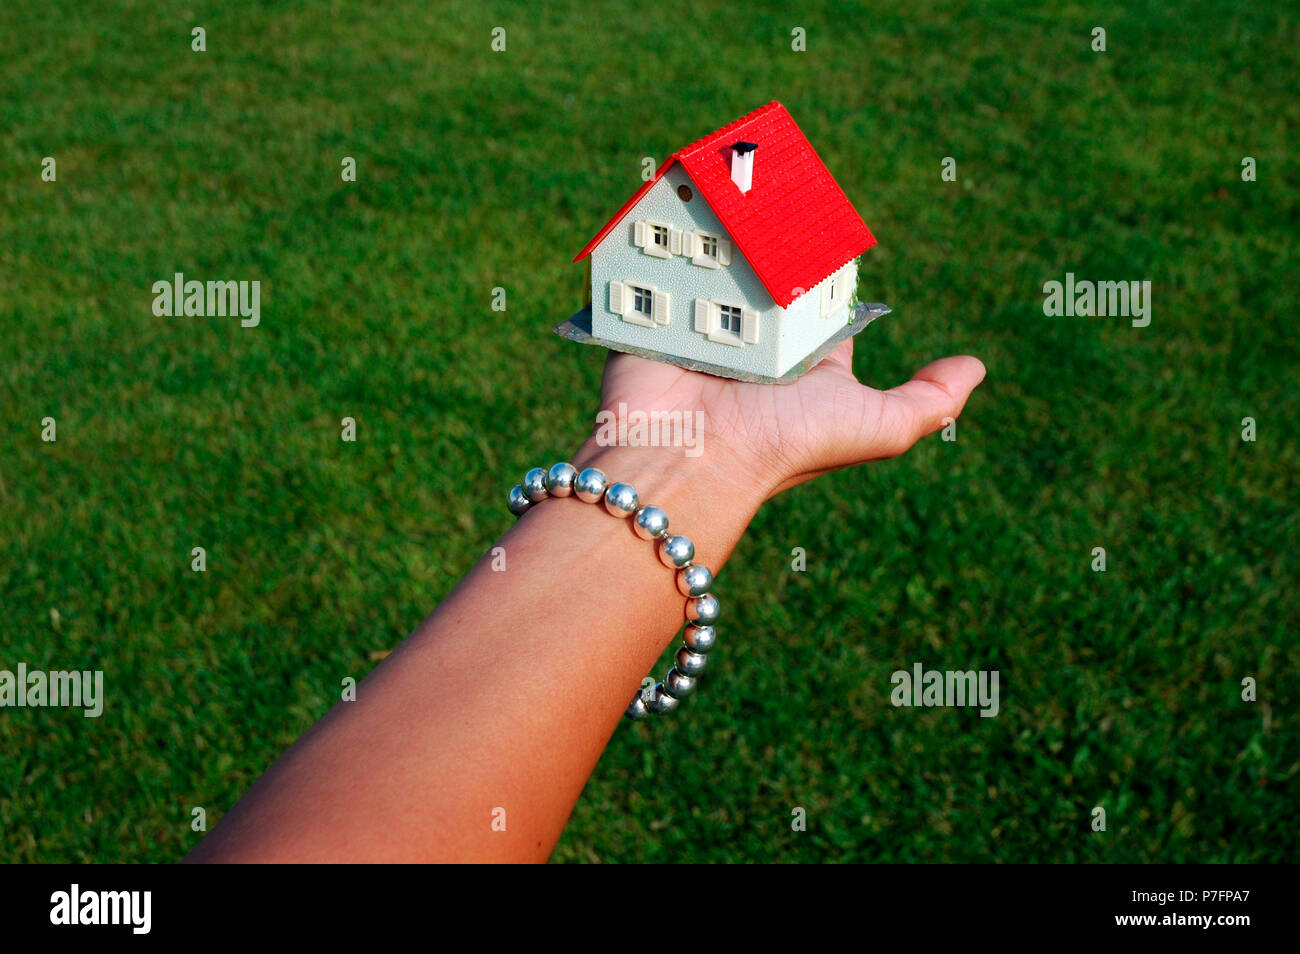 Symbol Picture Home Ownership Real Estate Financing Building Loan